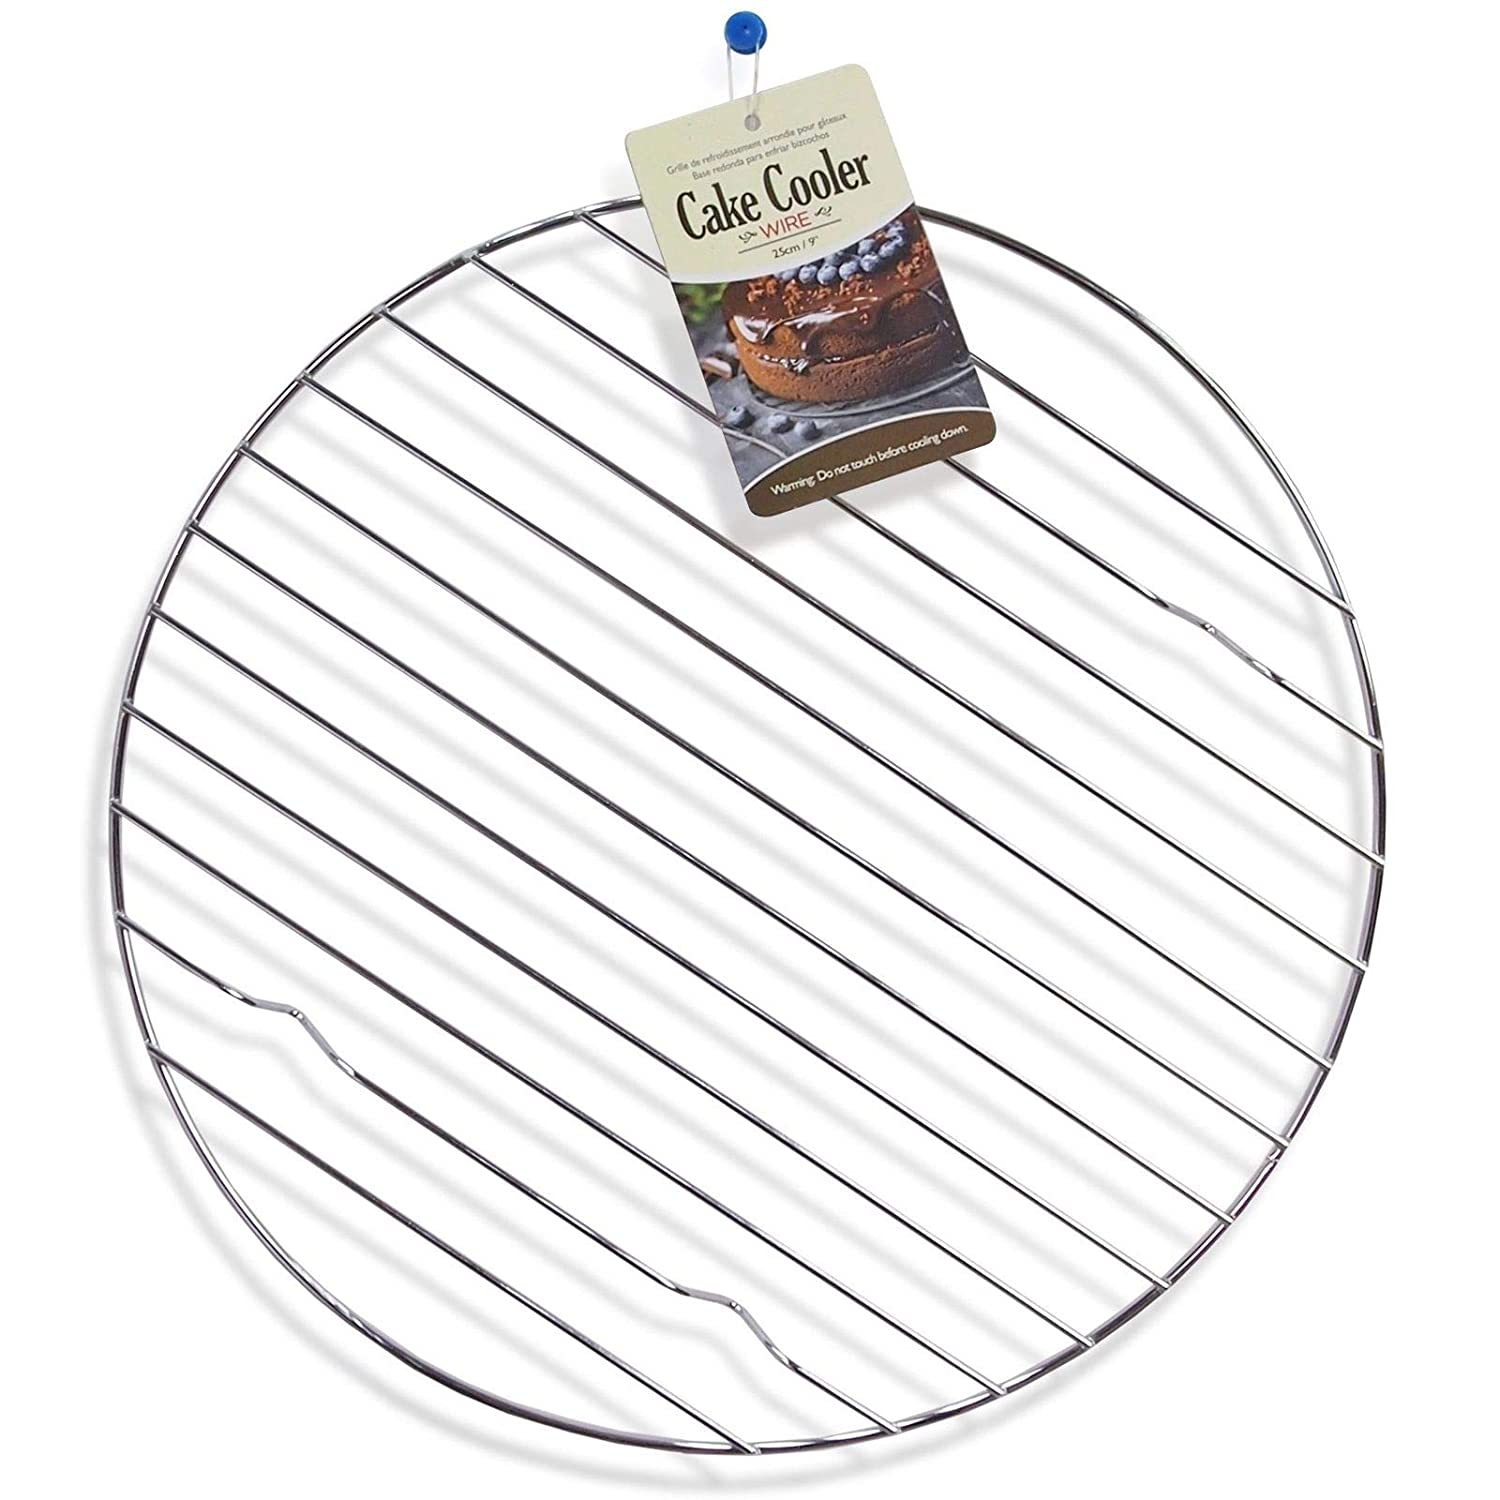 25cm Strong Metal Wire Round Cake Cooler Wire Baking Catering Cupcake Stand